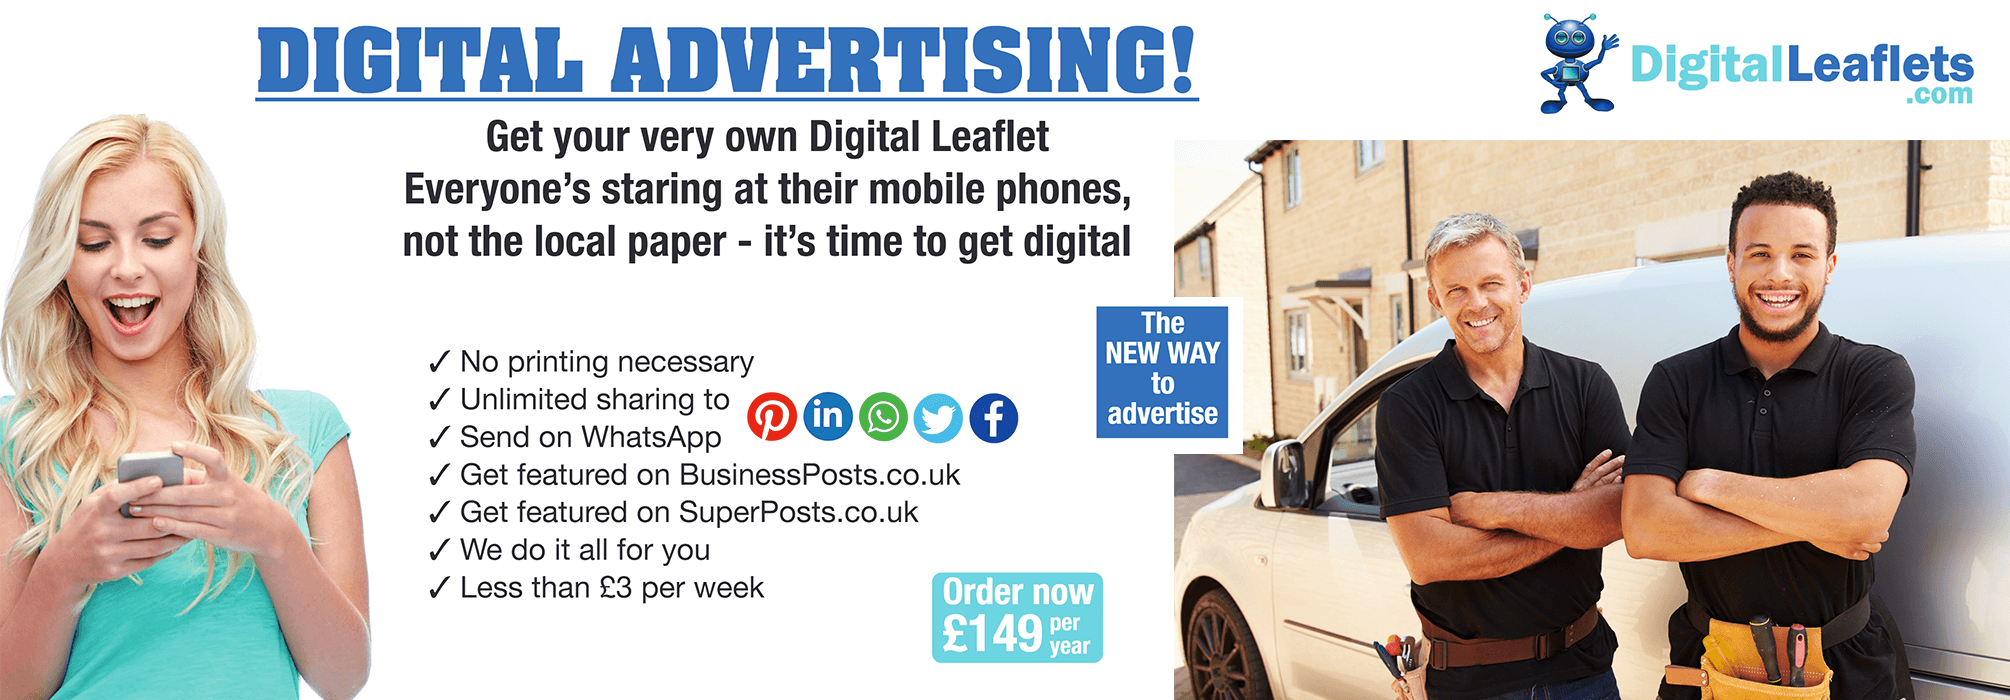 Digital Leaflets  ORDER yours now!  Less than £3 per week!